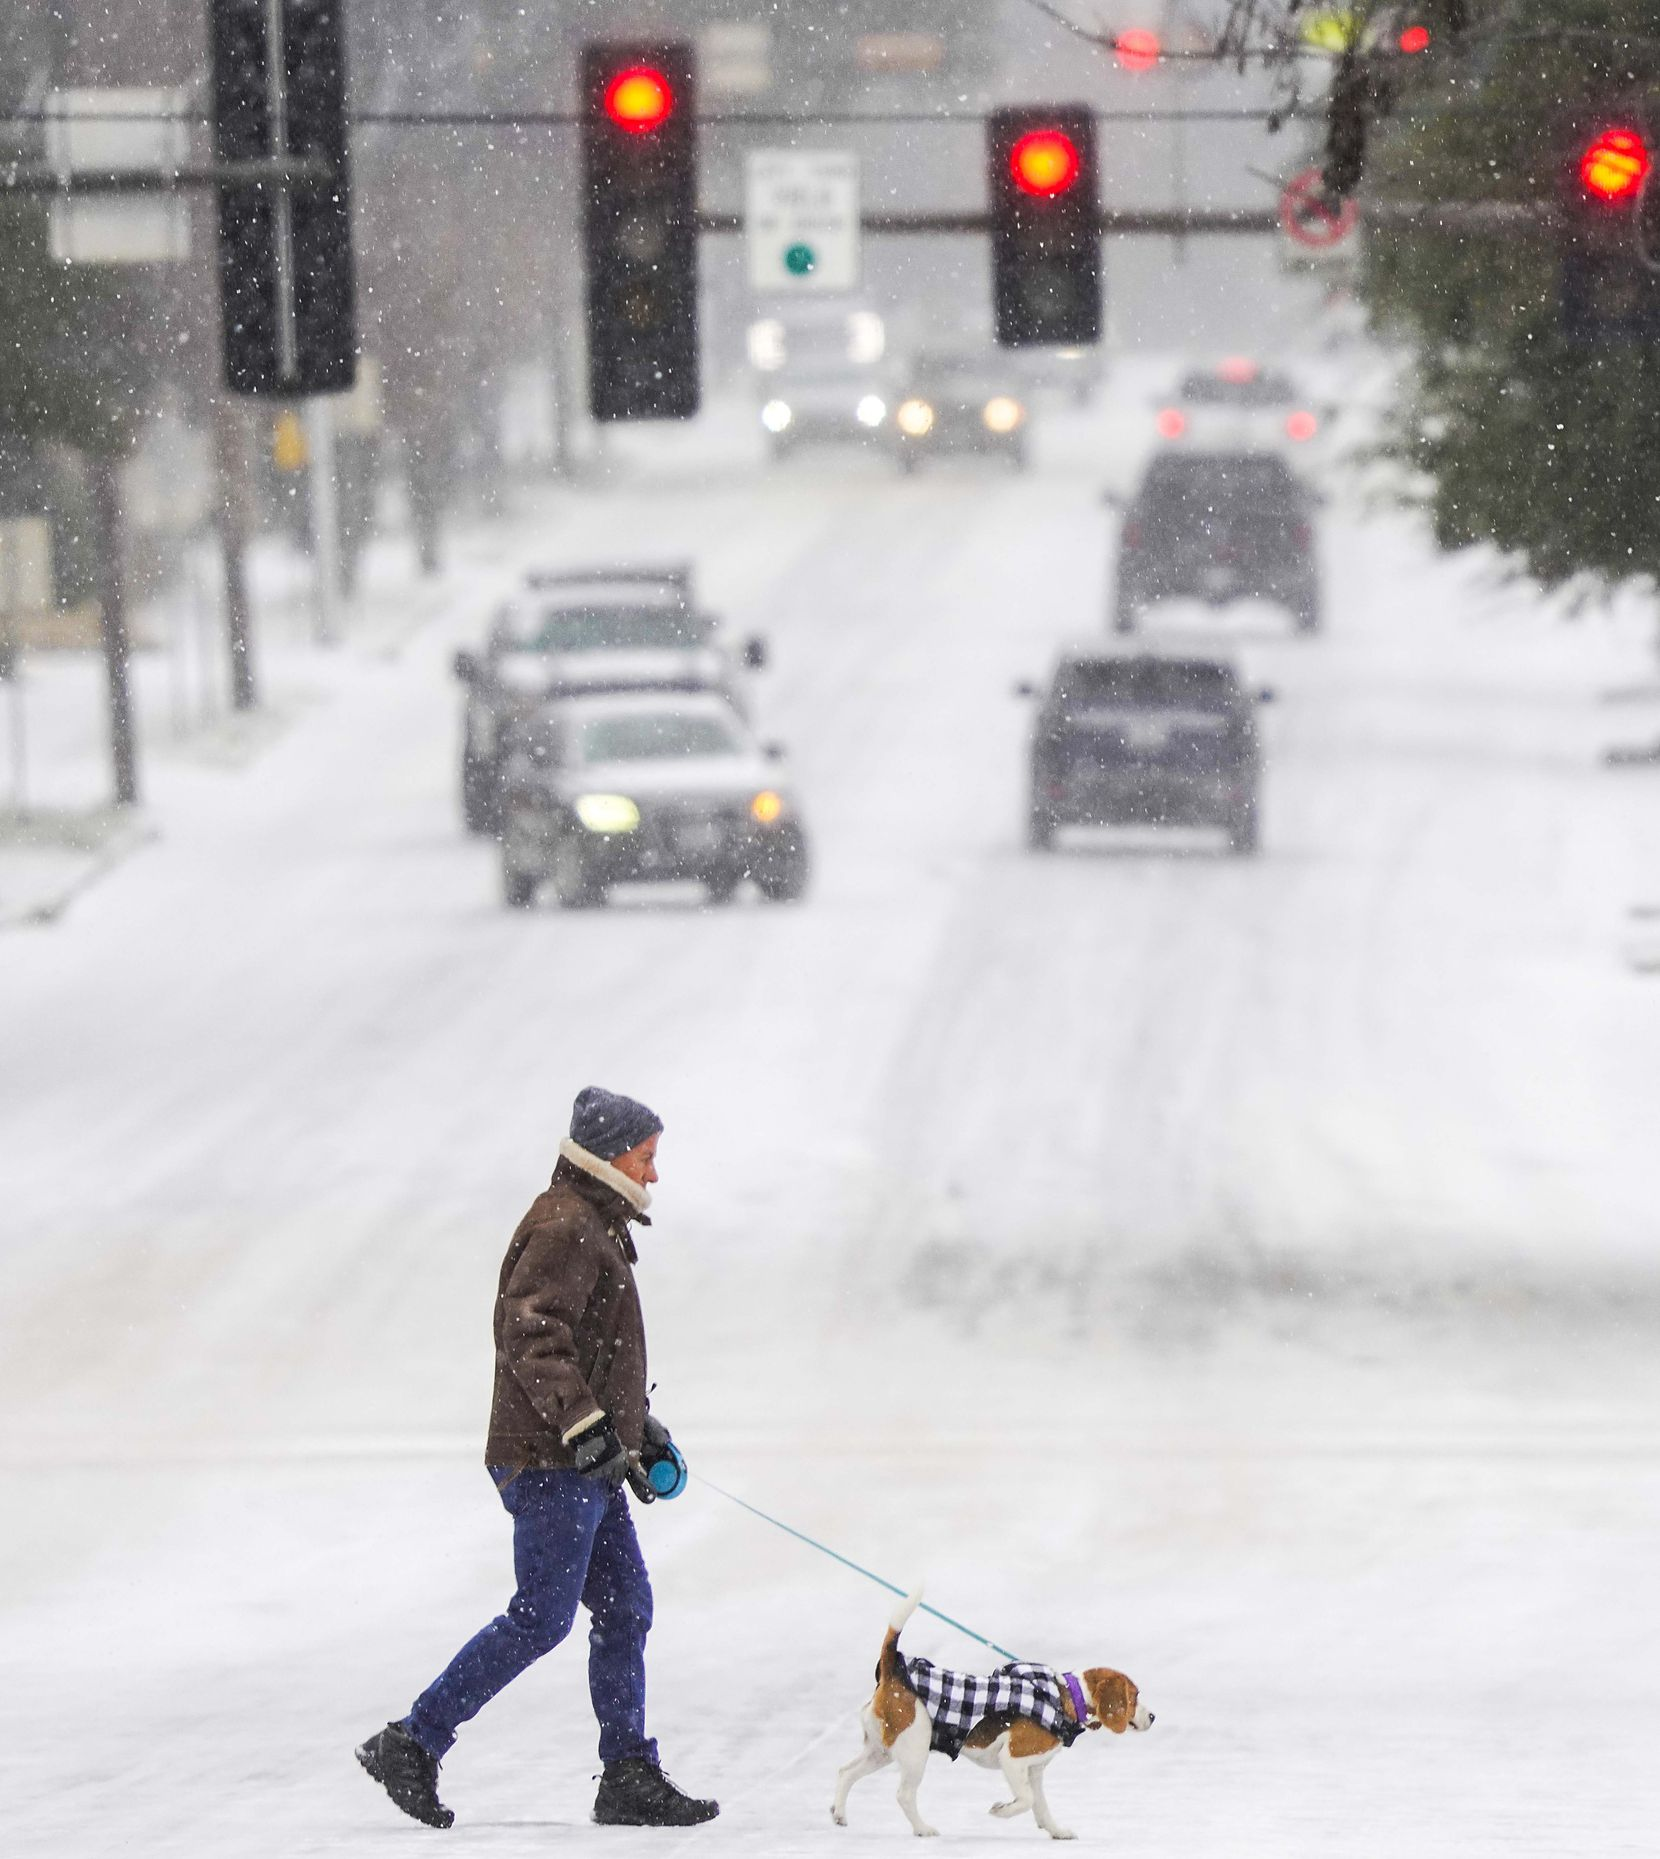 A man walks his dog across Hillcrest near Lovers lane as a winter storm brings snow and freezing temperatures to North Texas on Sunday, Feb. 14, 2021, in University Park.  A winter storm watch has been issued for all of North Texas, including Dallas, Denton, Collin and Tarrant counties and will be in effect from late Saturday through Monday afternoon.